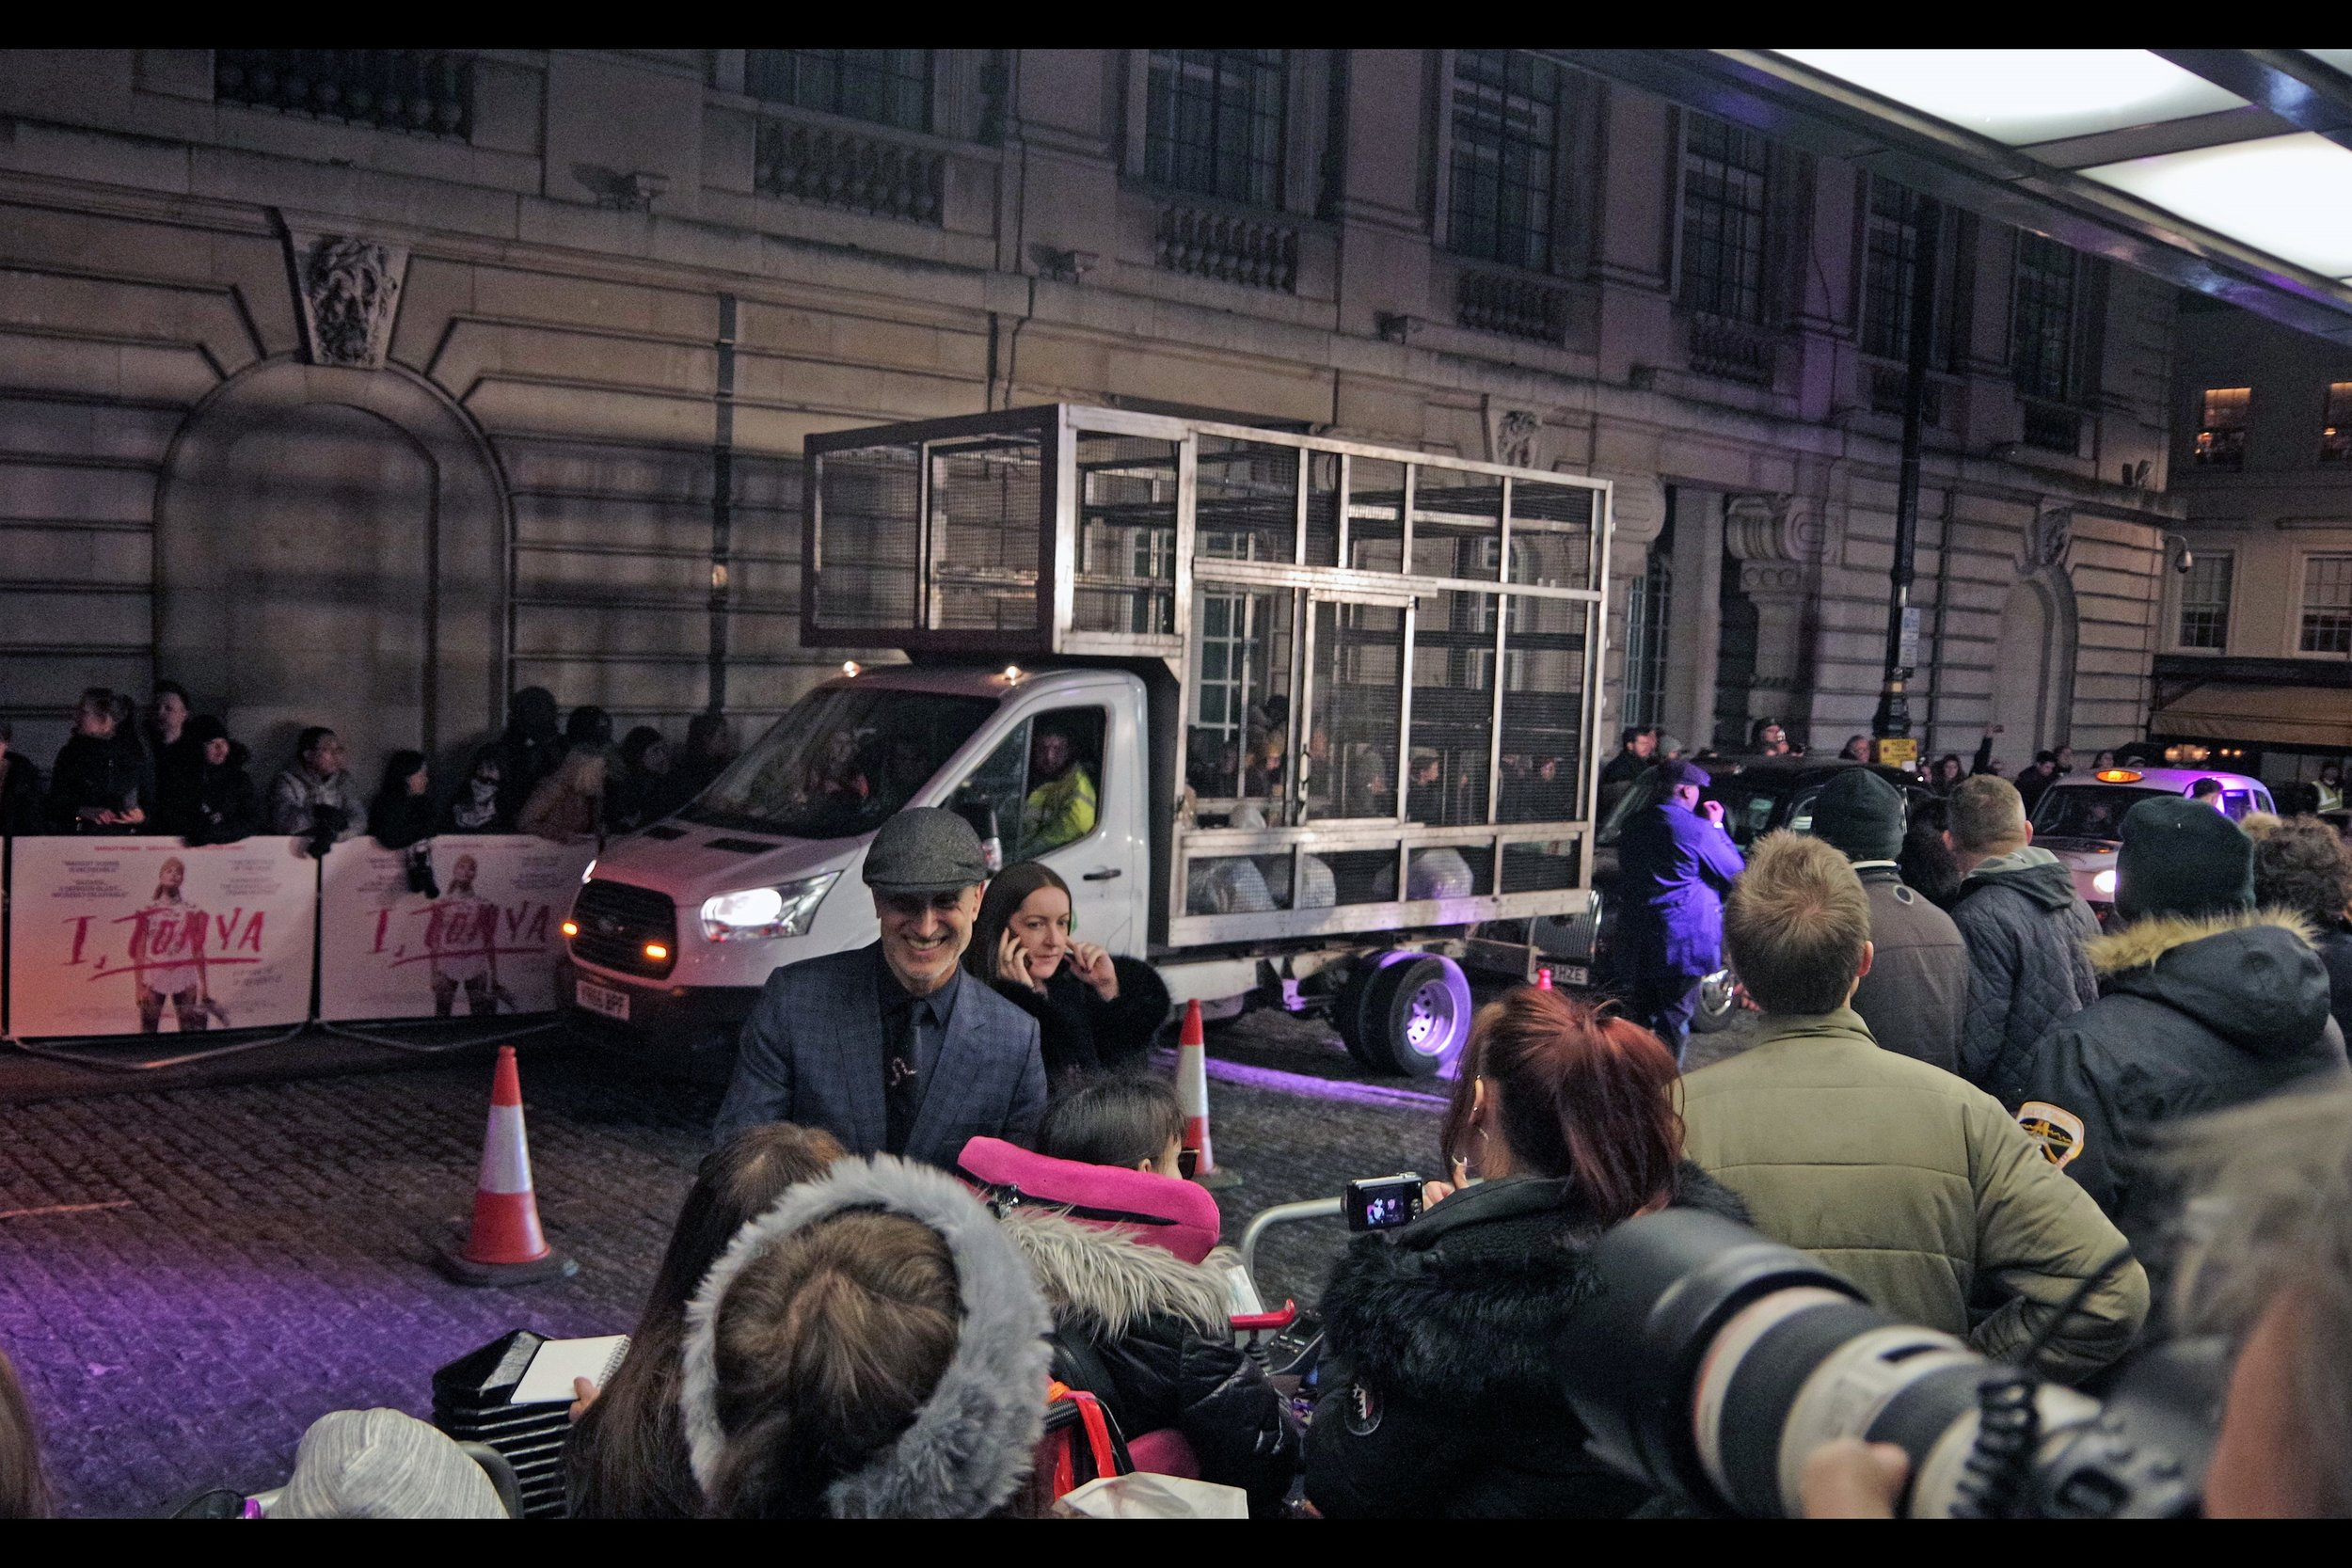 Sadly they don't always close down the road at Curzon Mayfair premieres (though they did for    the premiere for 'The Mercy'    a bit under a fortnight ago) - but it's not every premiere that gets a caged garbage truck making a passthrough.